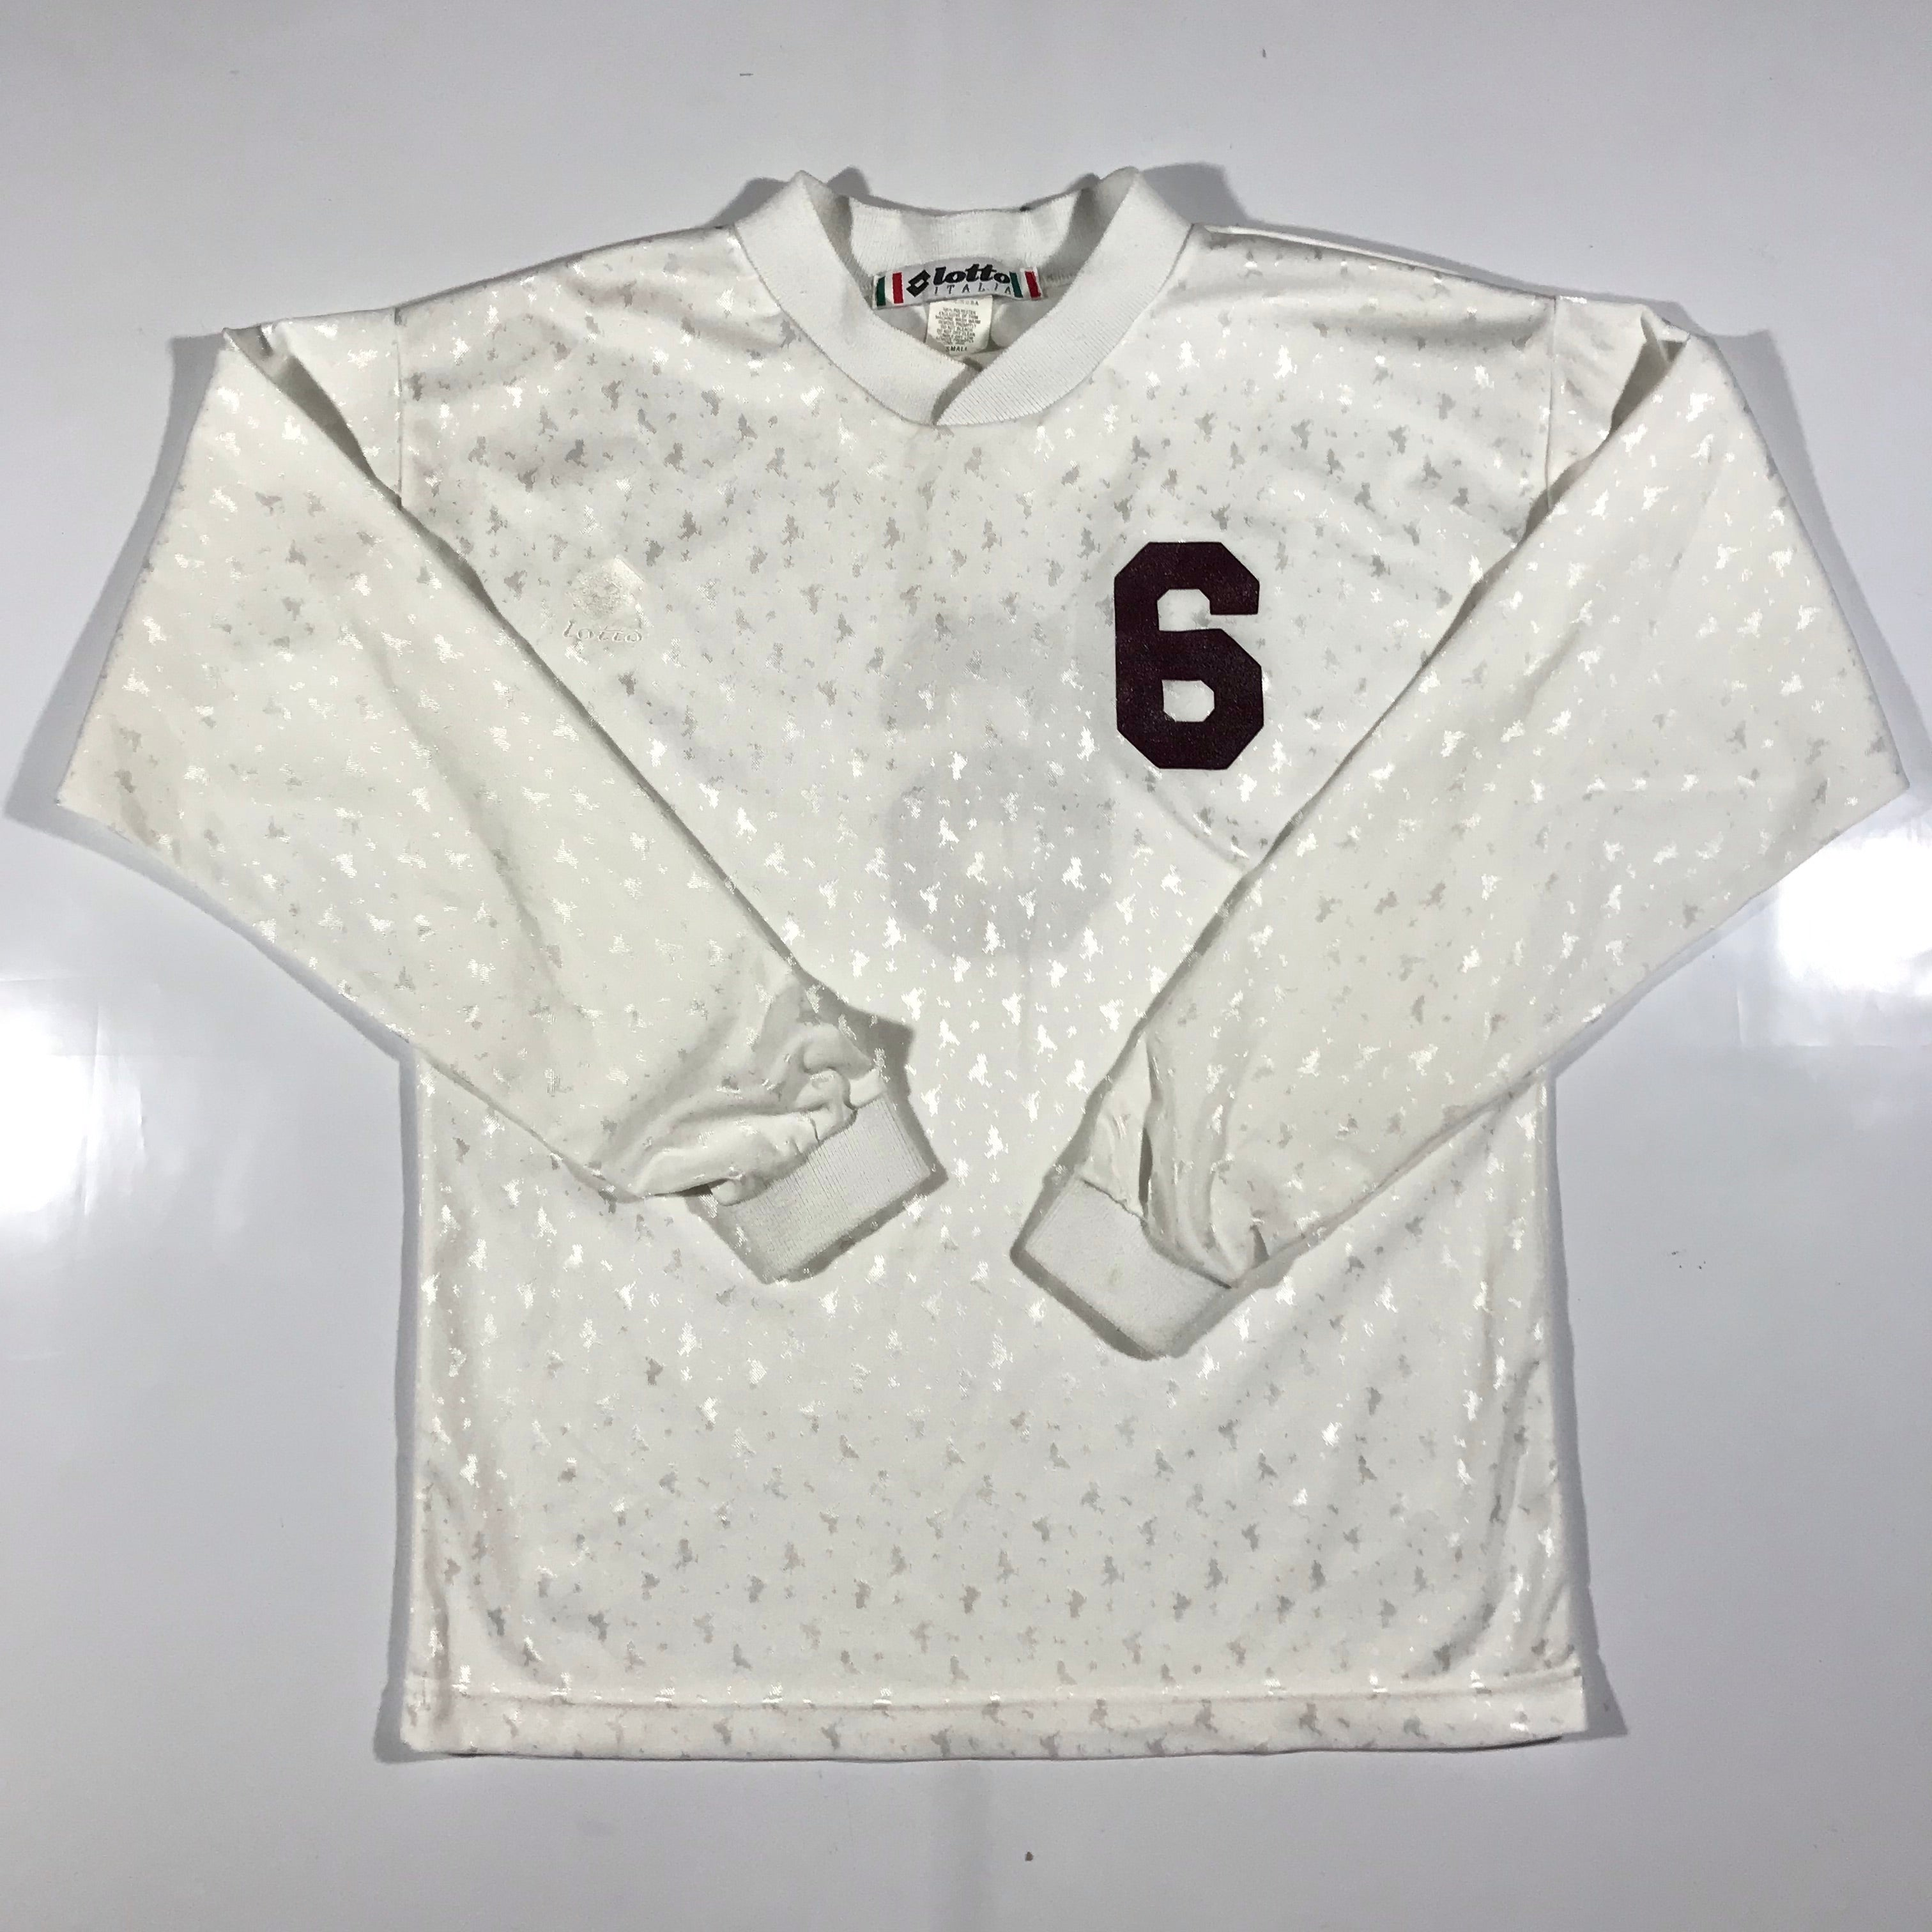 LOTTO italia white sparkle jersey made in usa small